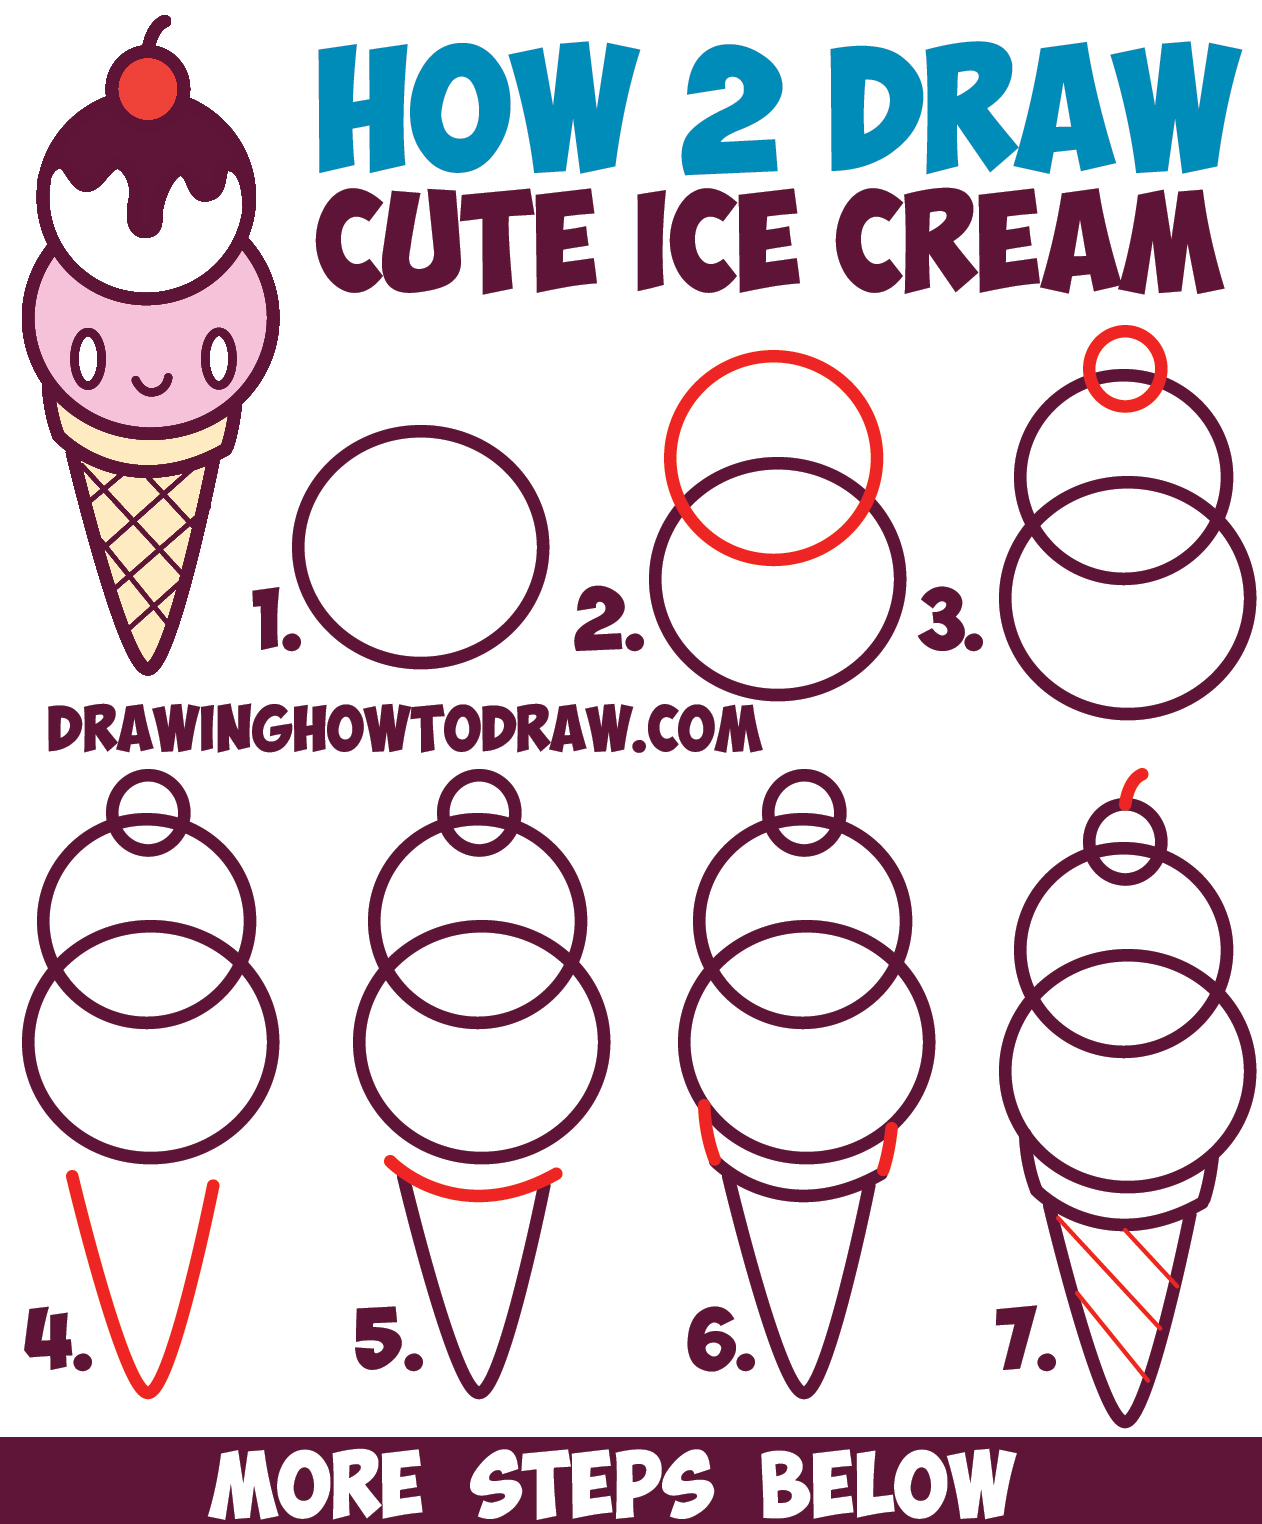 How to Draw Cute Kawaii Ice Cream Cone with Face on It - Easy Step by Step Drawing Tutorial for Kids